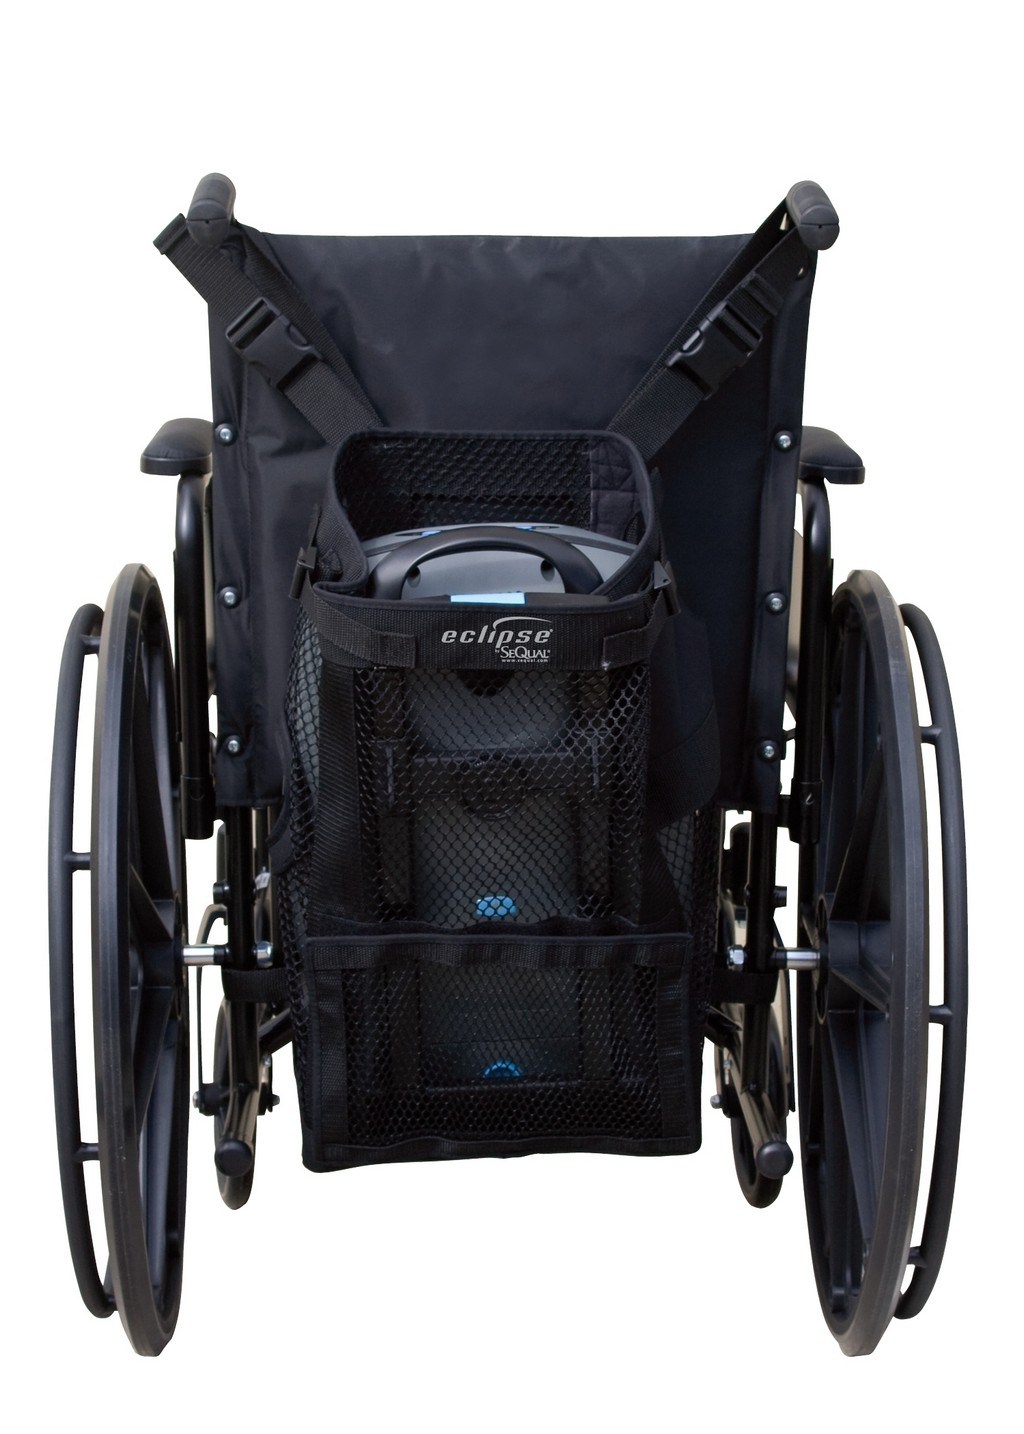 power chair accessories bags black bonded leather wheelchair assistance quickie tires 20 inch